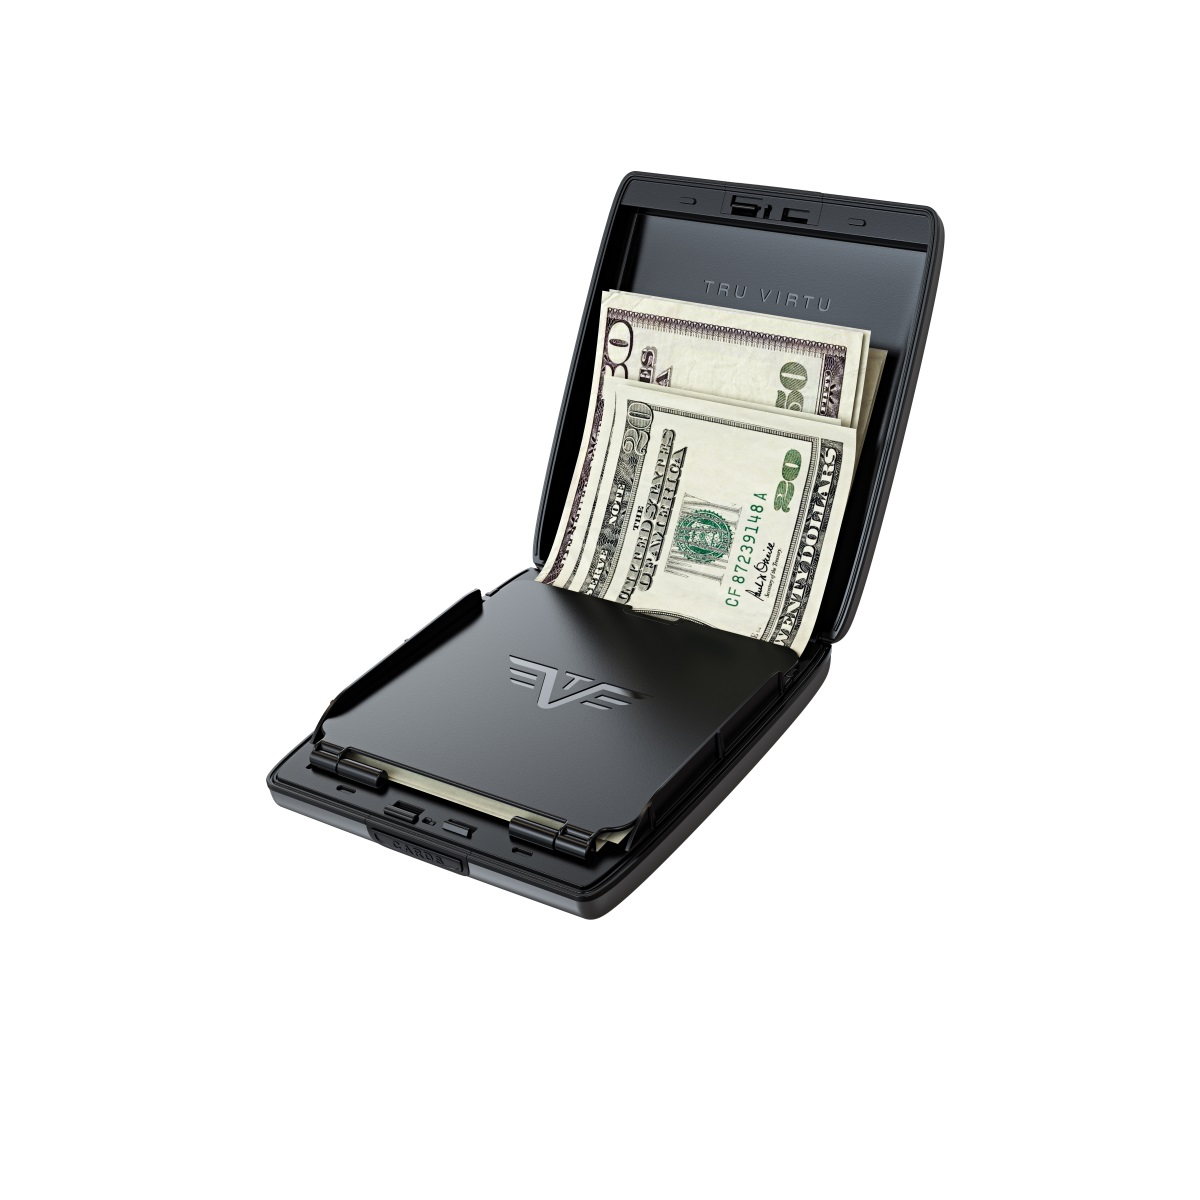 TRU VIRTU Aluminum Wallet Beluga - Money & Cards - Leather Line - Black